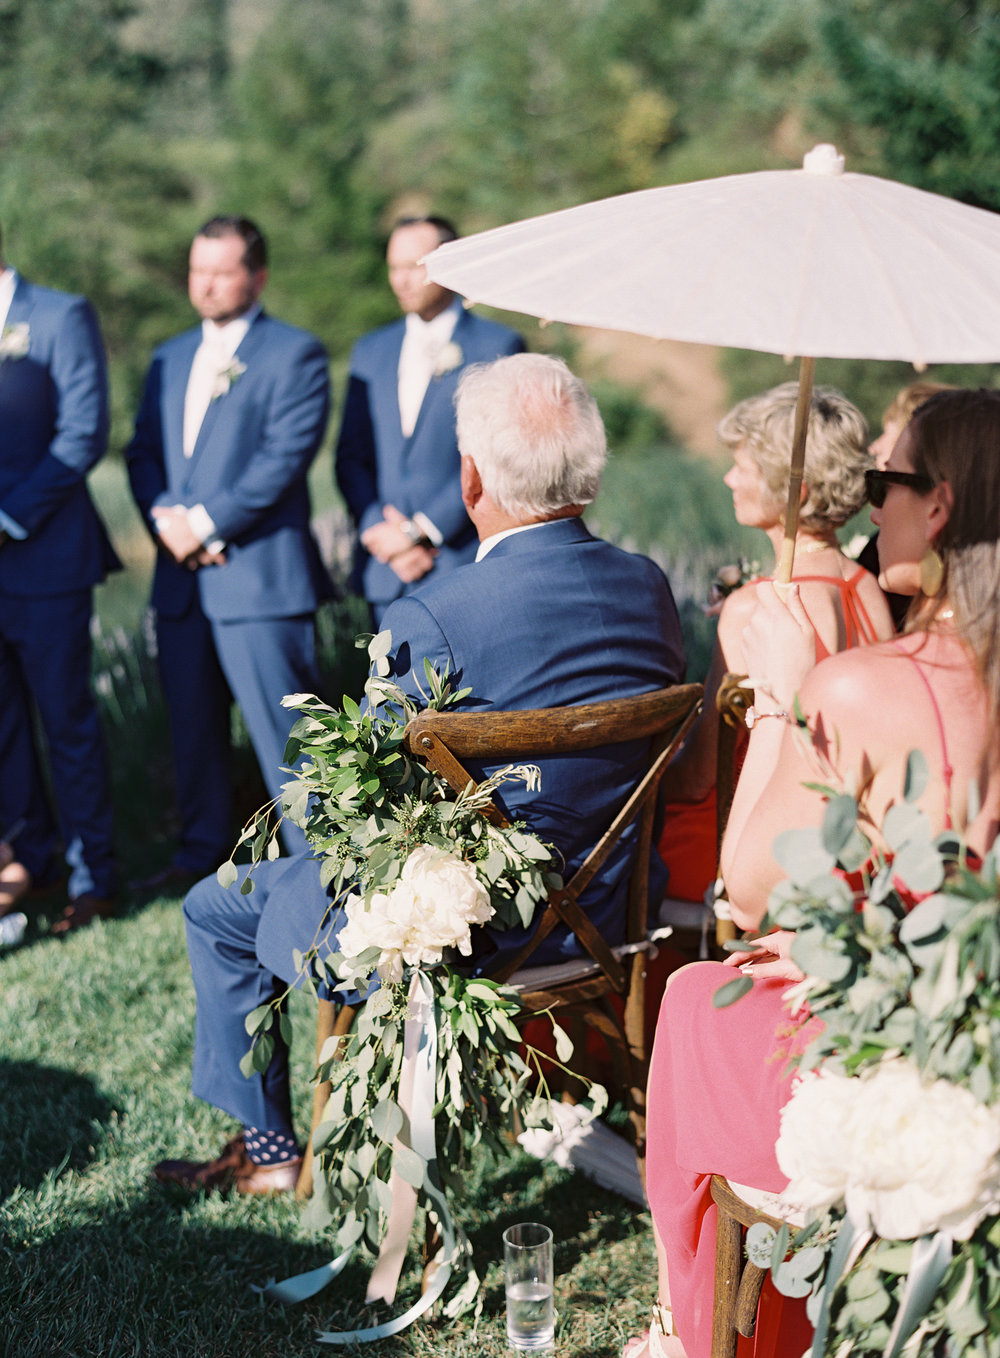 Napa Wedding Photographer - Meghan Mehan Photography _034.jpg